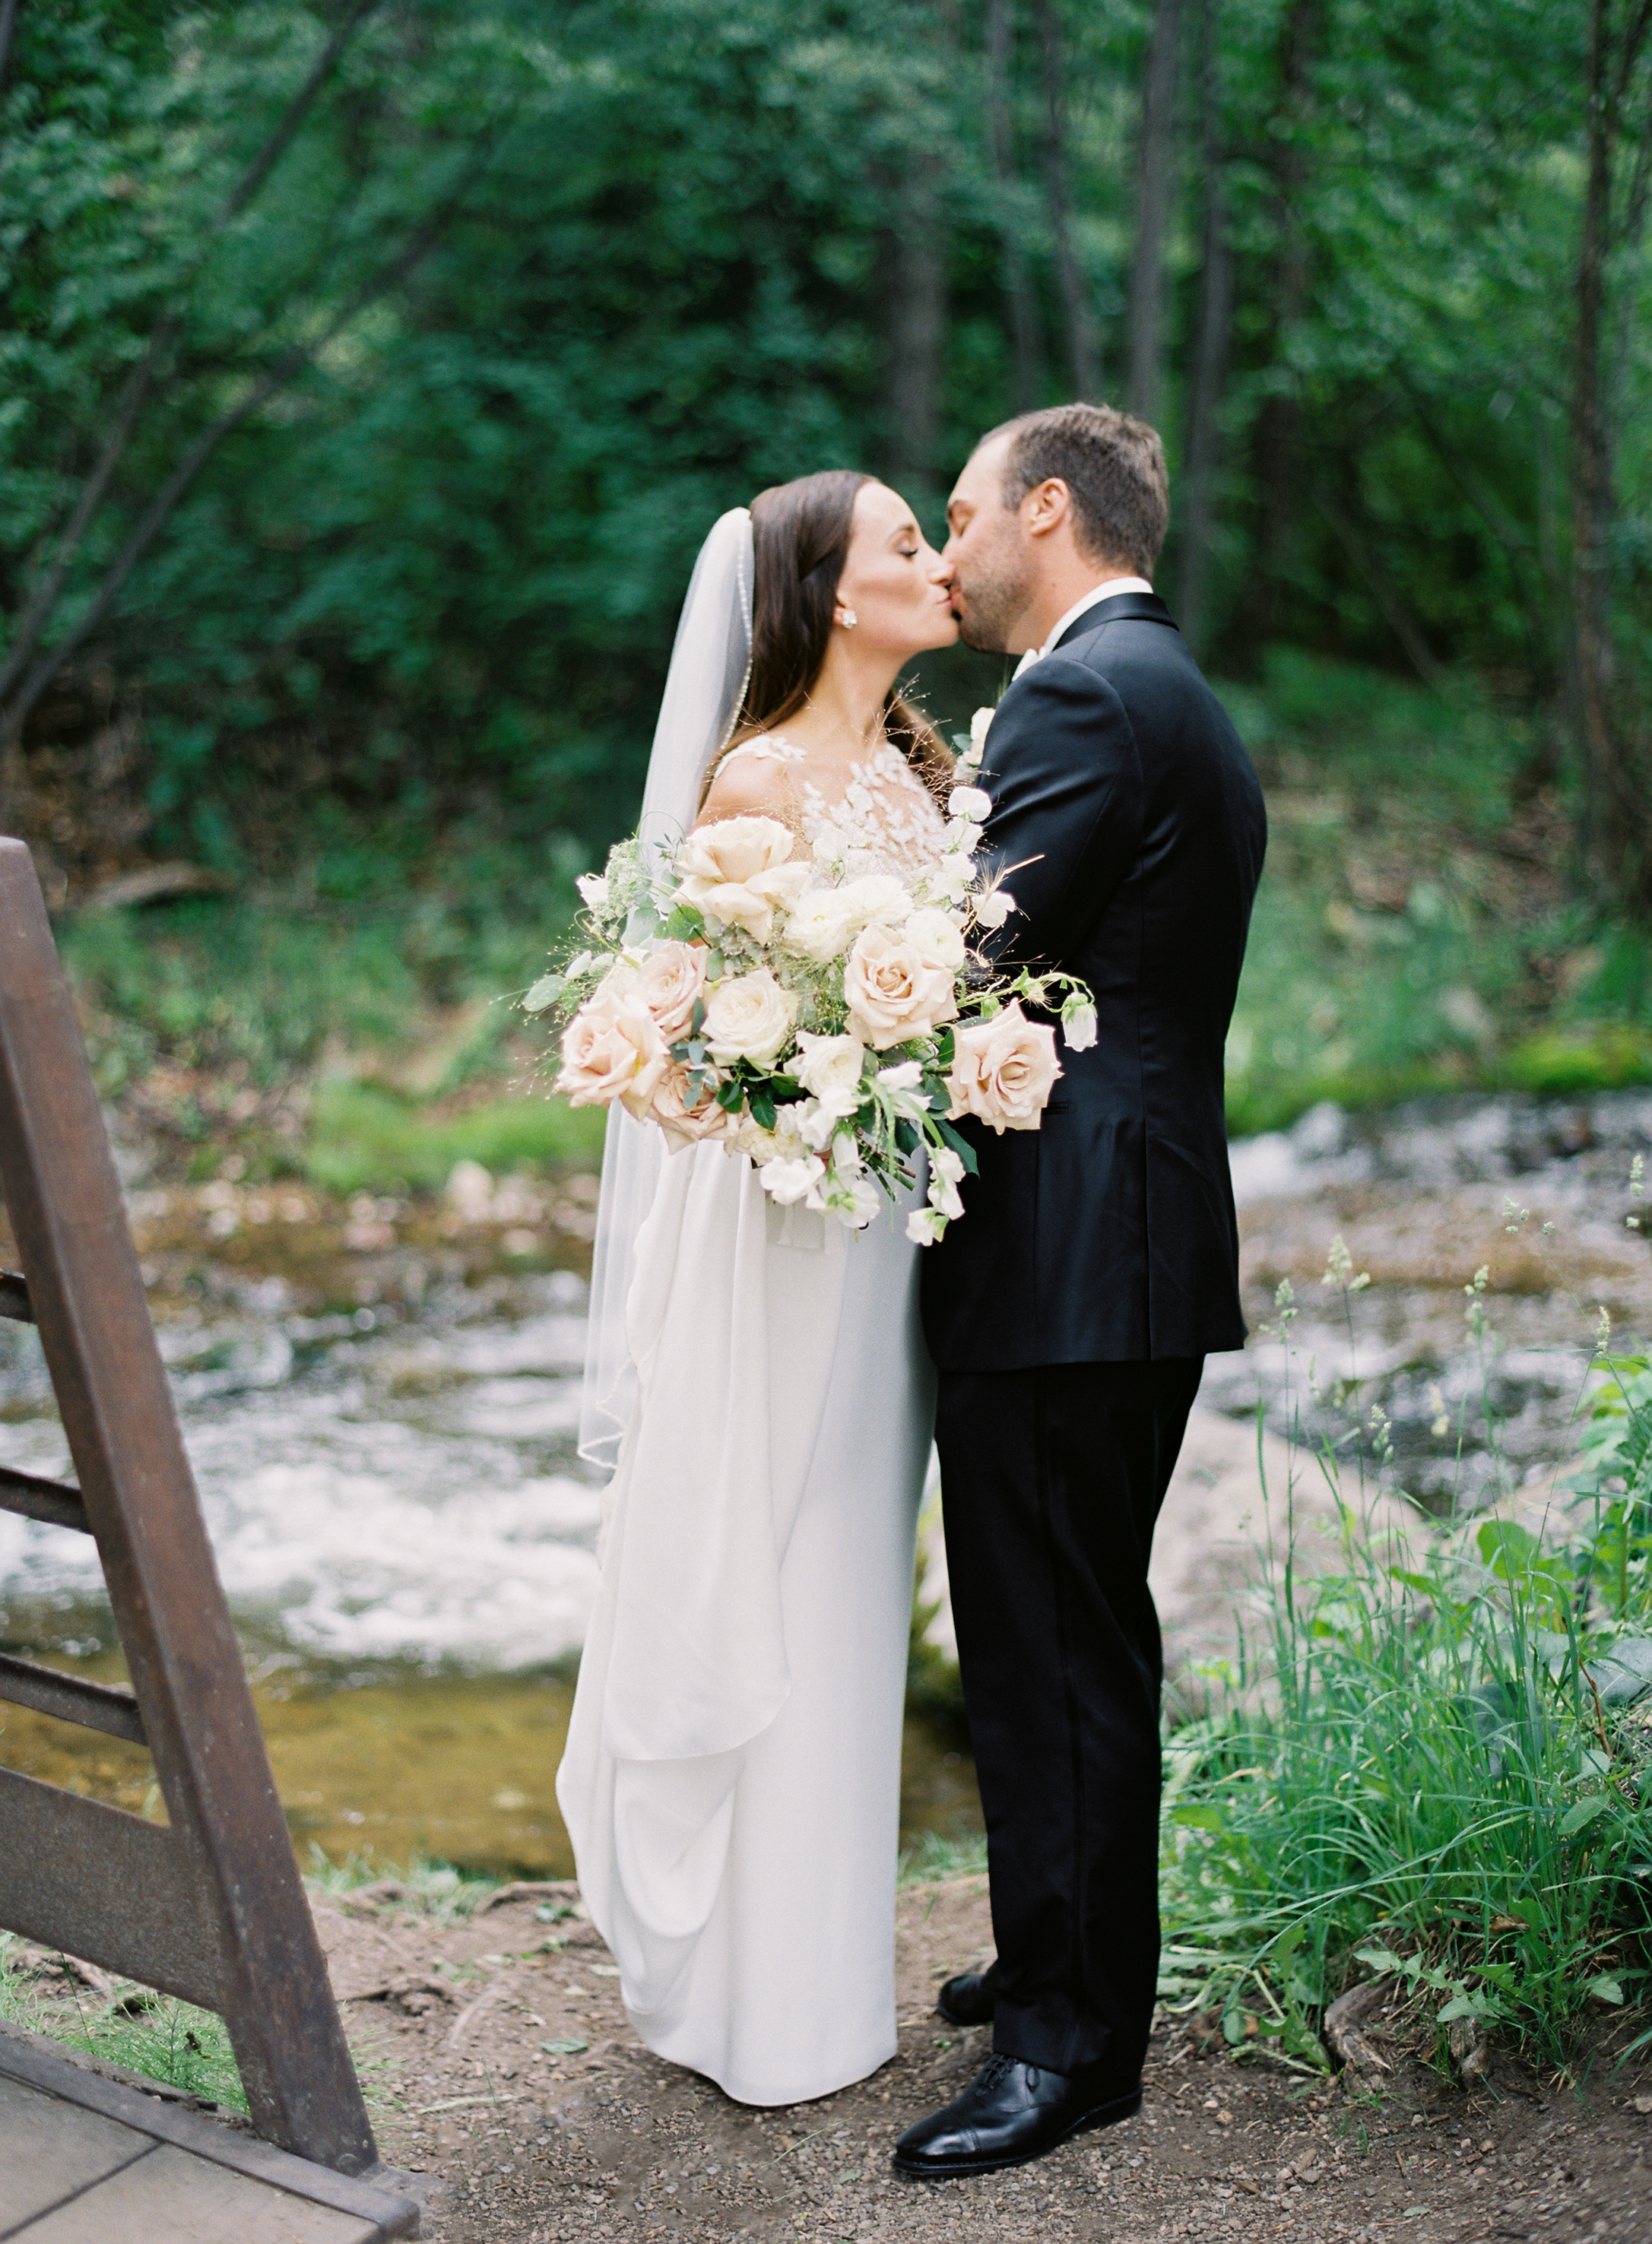 Olivia and Billy Wedding-Carrie King Photographer-16.jpg